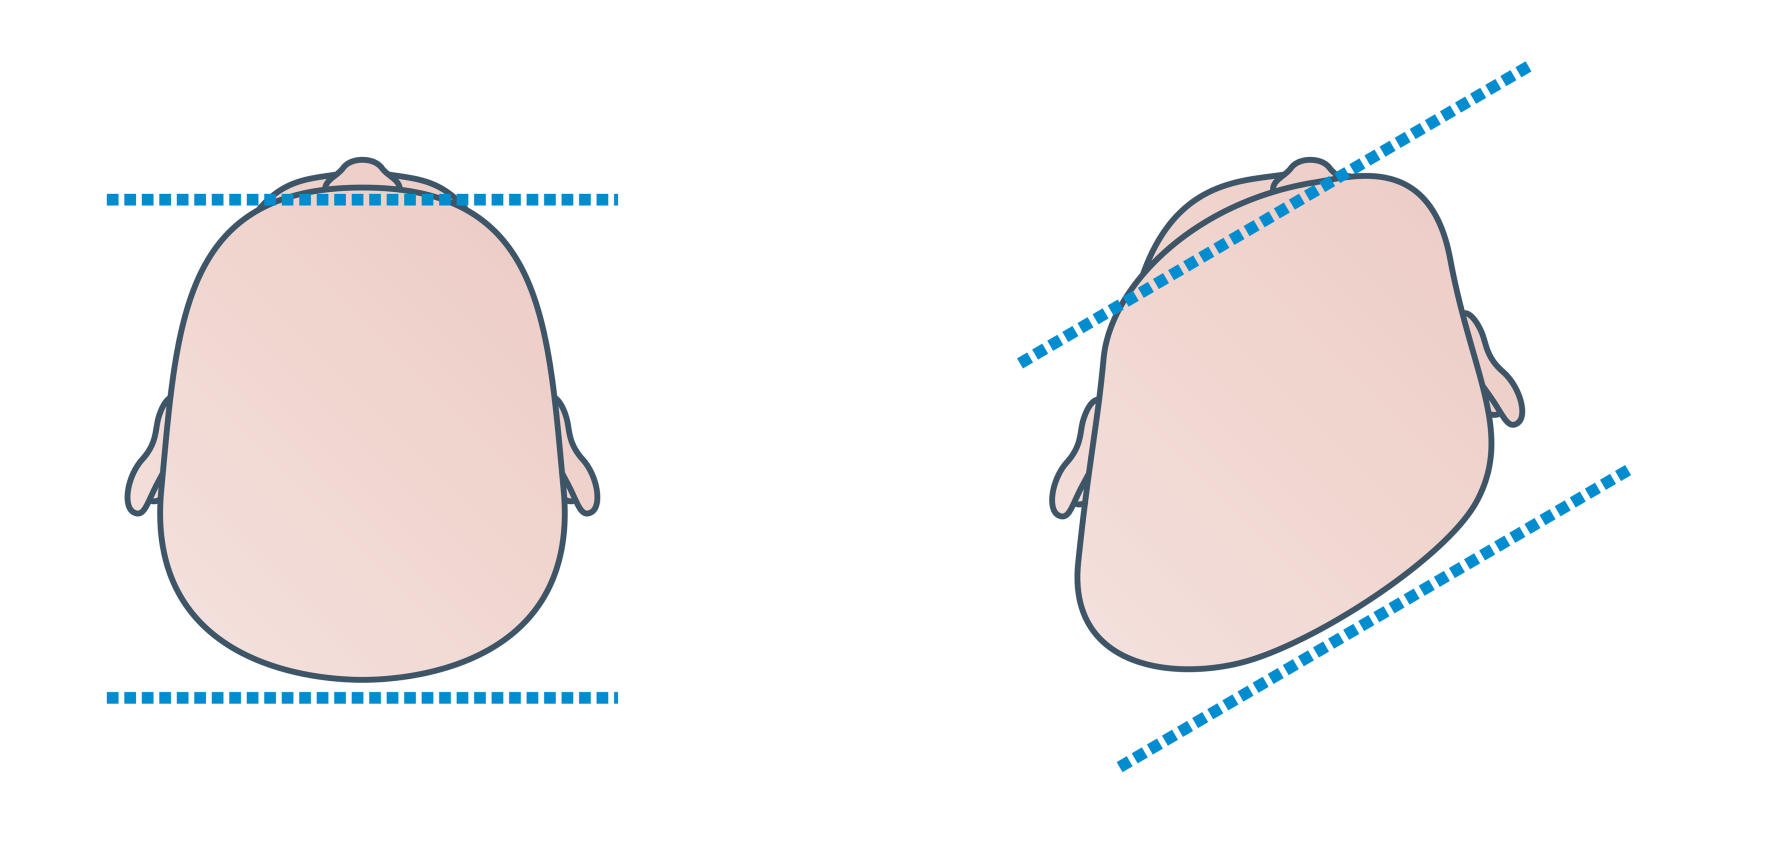 Plagiocephaly by The Royal Children's Hospital